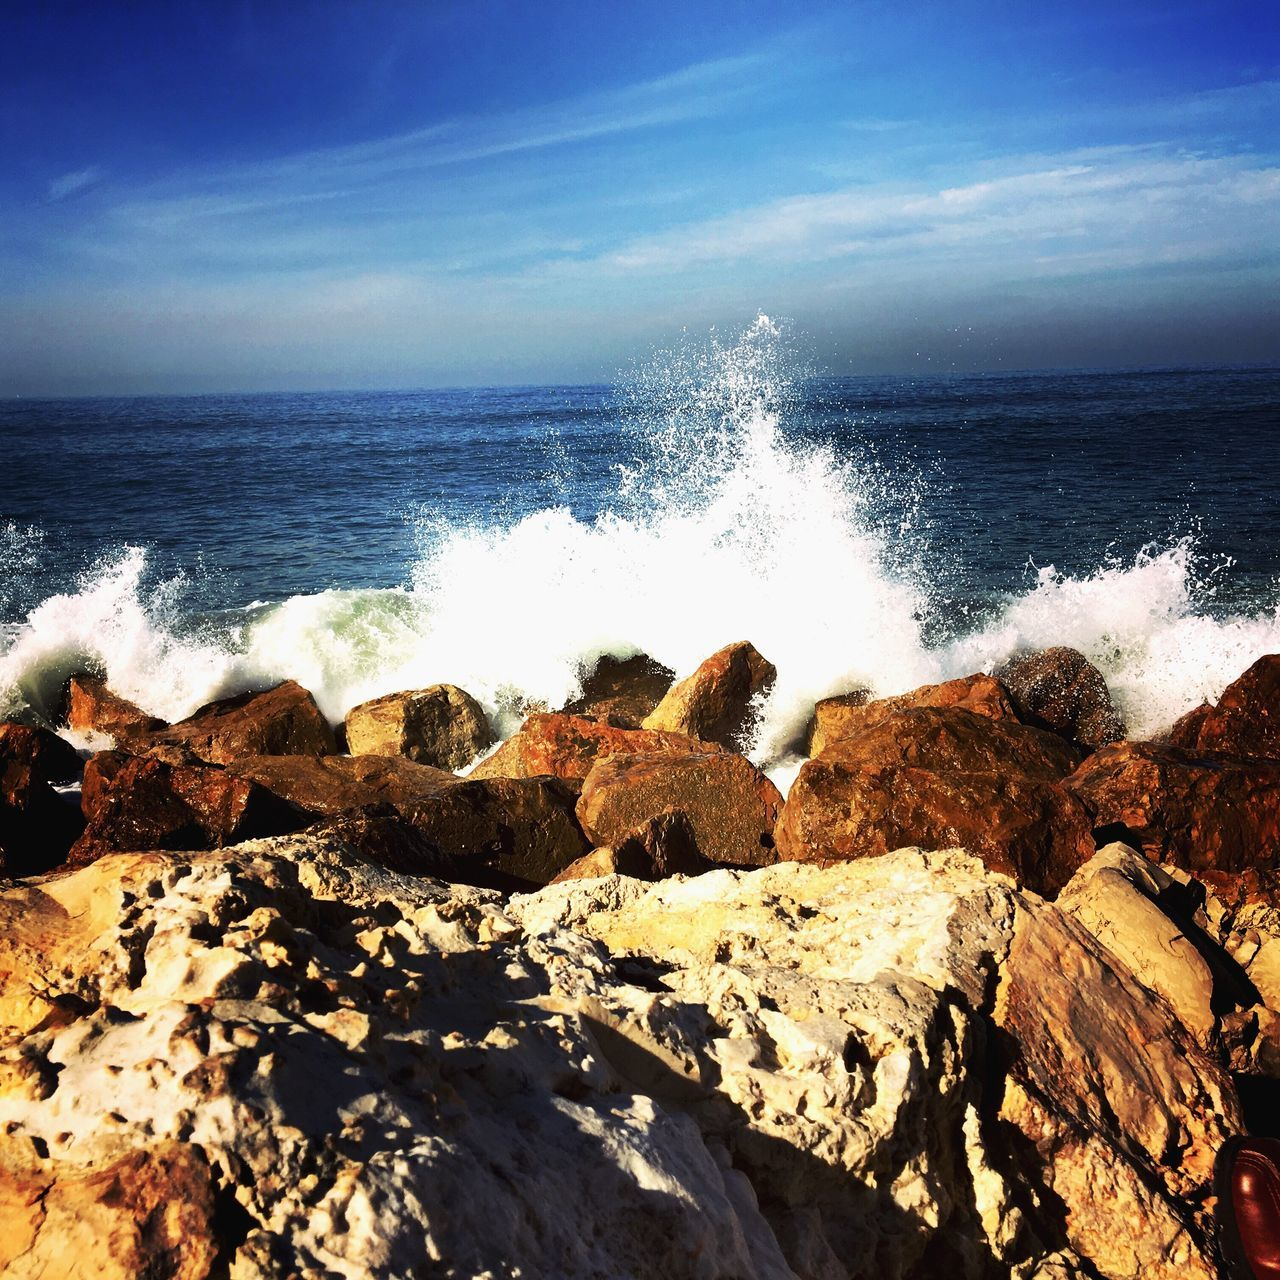 sea, water, horizon over water, wave, nature, beauty in nature, rock - object, motion, power in nature, rock, beach, scenics, rough, day, outdoors, no people, sky, tranquil scene, tranquility, breaking, crash, force, sunlight, hitting